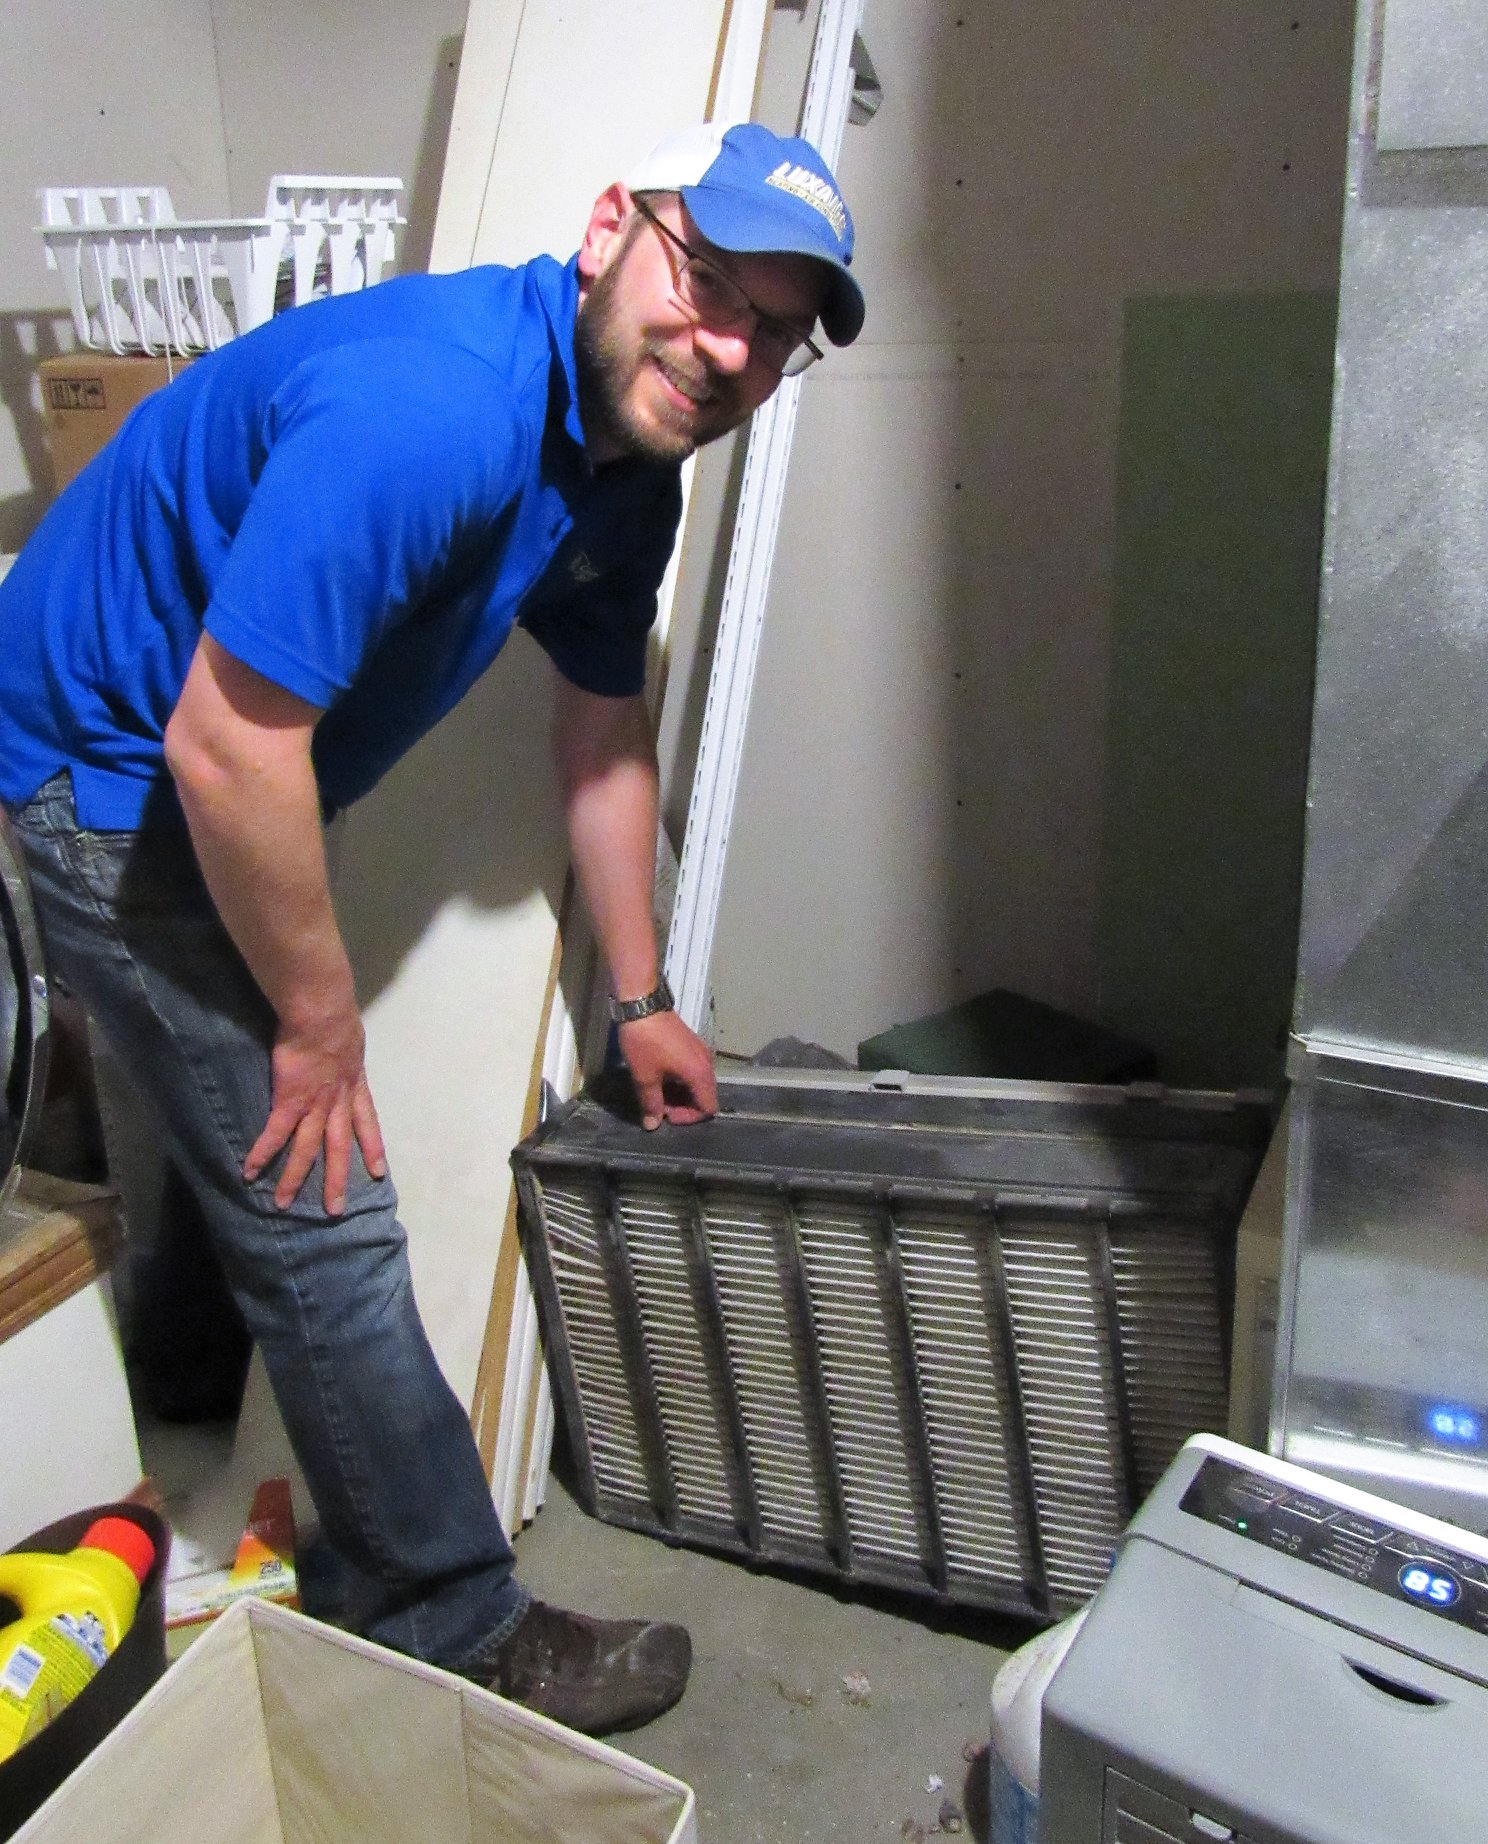 Thanks to Nick Schulz or Schulz Heating and Cooling in Antigo for rescuing us when our dryer died and the air filters needed to be changed all on the day the interns arrived. Thanks Nick! You rock!